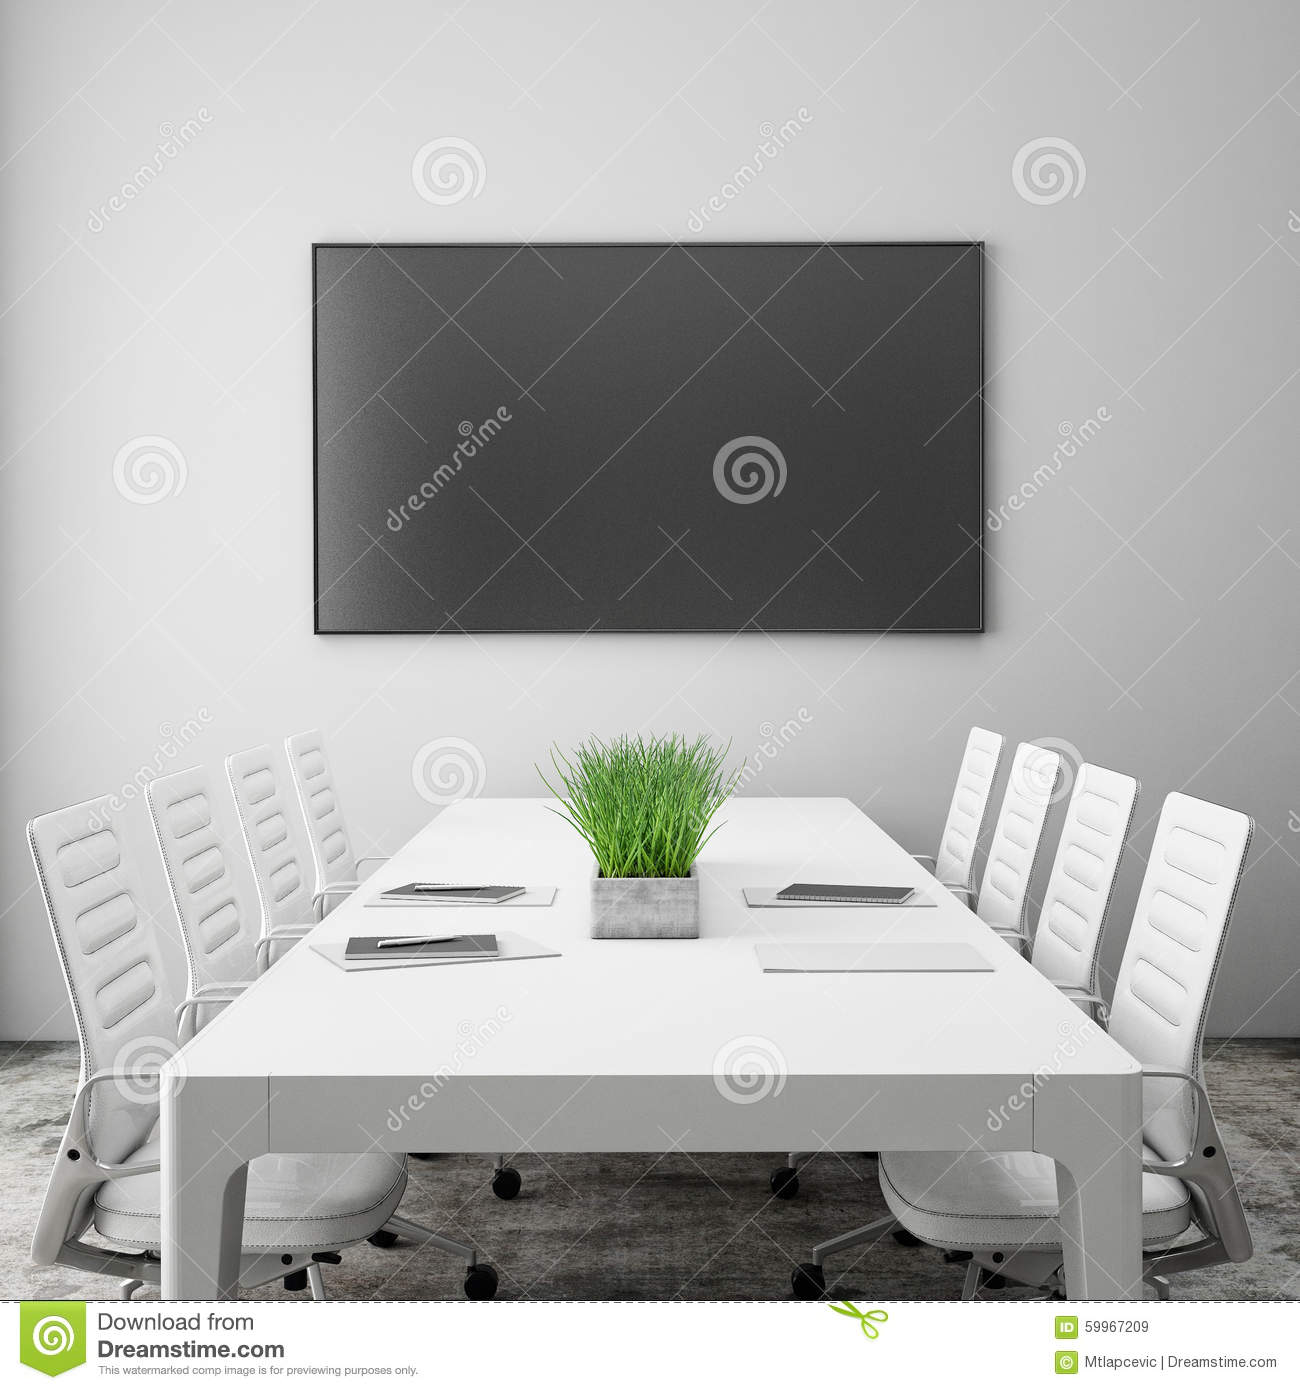 Mock Up Tv Screen In Meeting Room With Conference Table, Interior ...